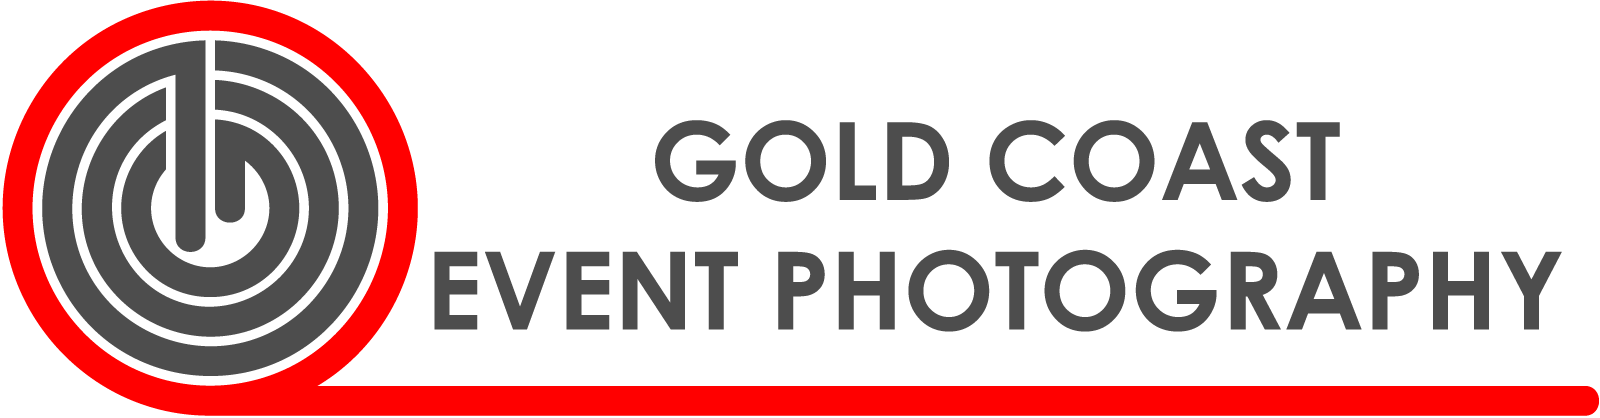 The-Red-Carpet-Photographer-Gold-Coast-Event-Photography-Banner-Logo.png